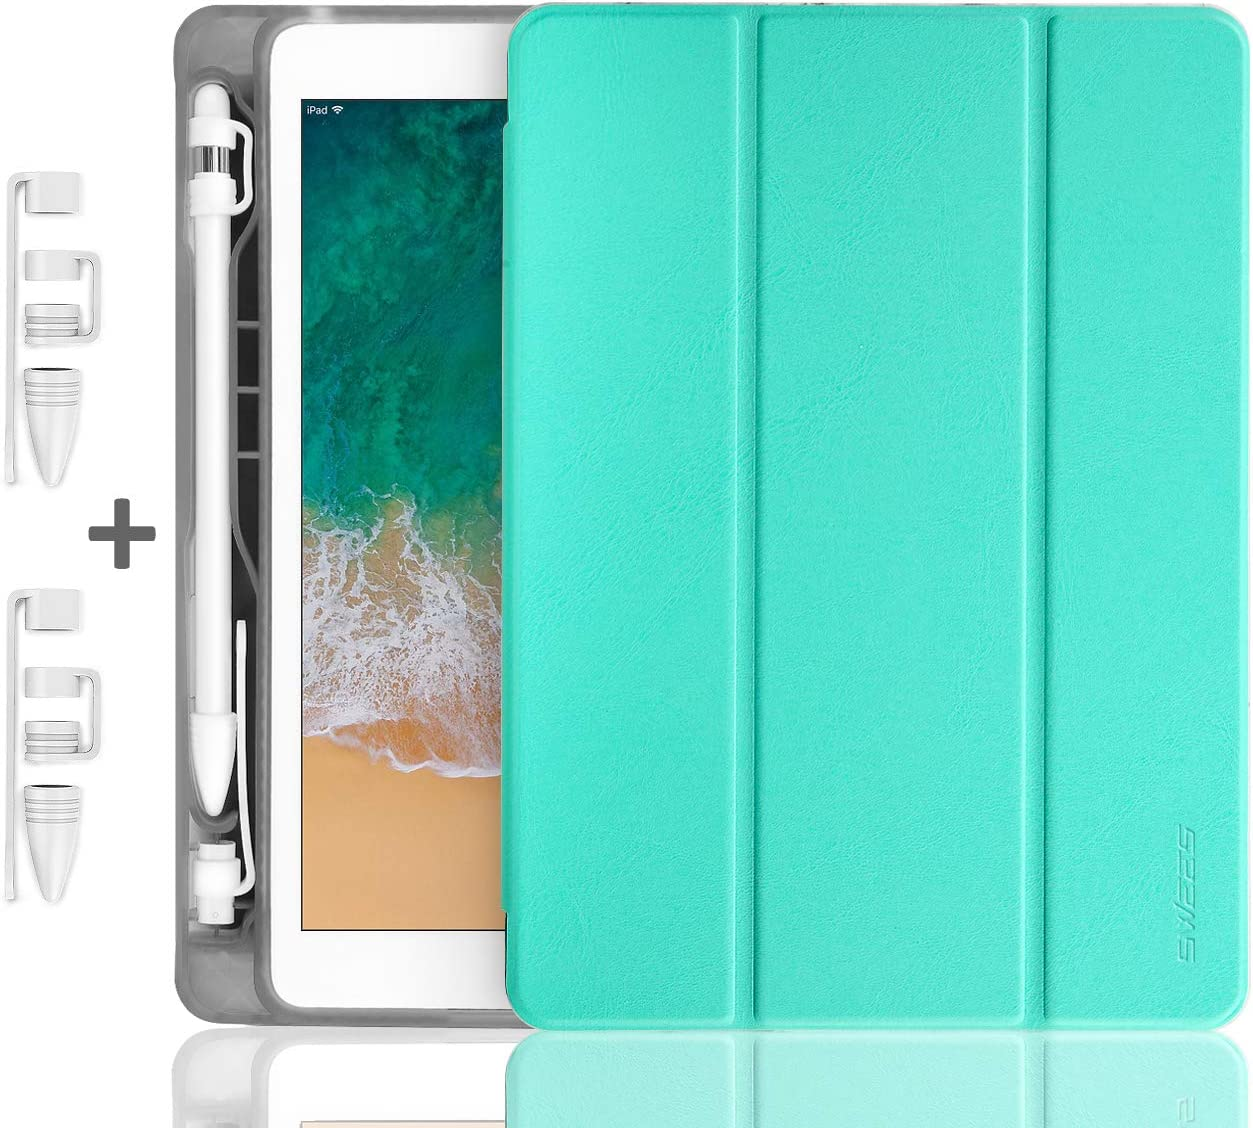 SWEES Compatible with iPad 9.7 2018/2017 Case with Pencil Holder, Shockproof Leather Smart Cover Auto Sleep/Wake with Pencil Cap Holder Compatible with iPad 9.7 inch 6th/5th Generation, Mint Green